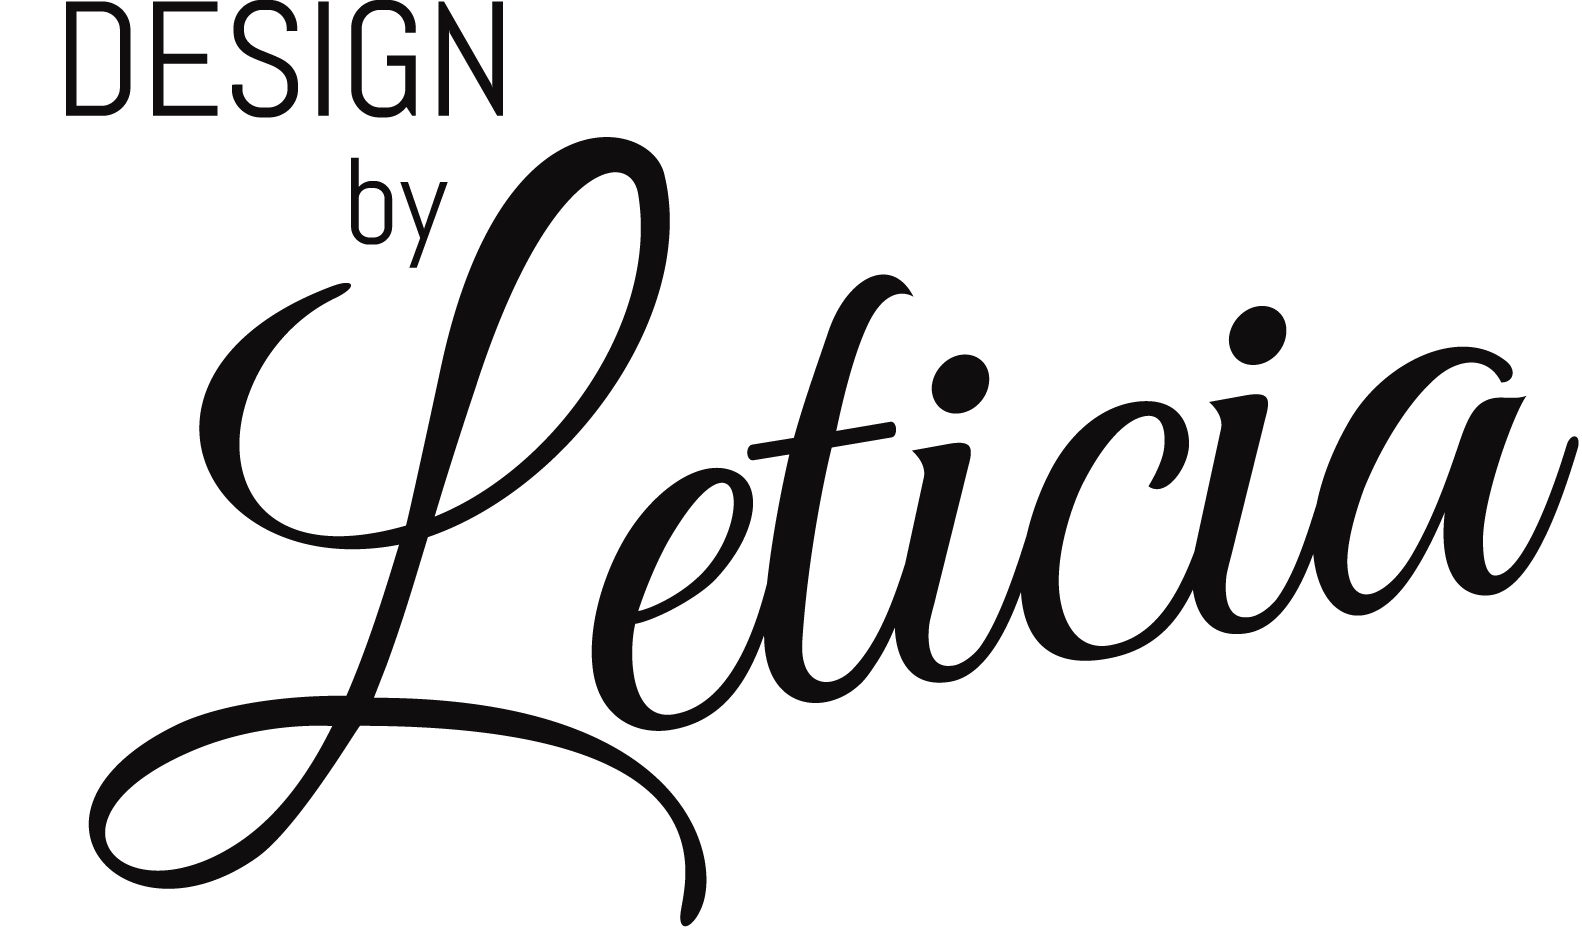 Design by Leticia